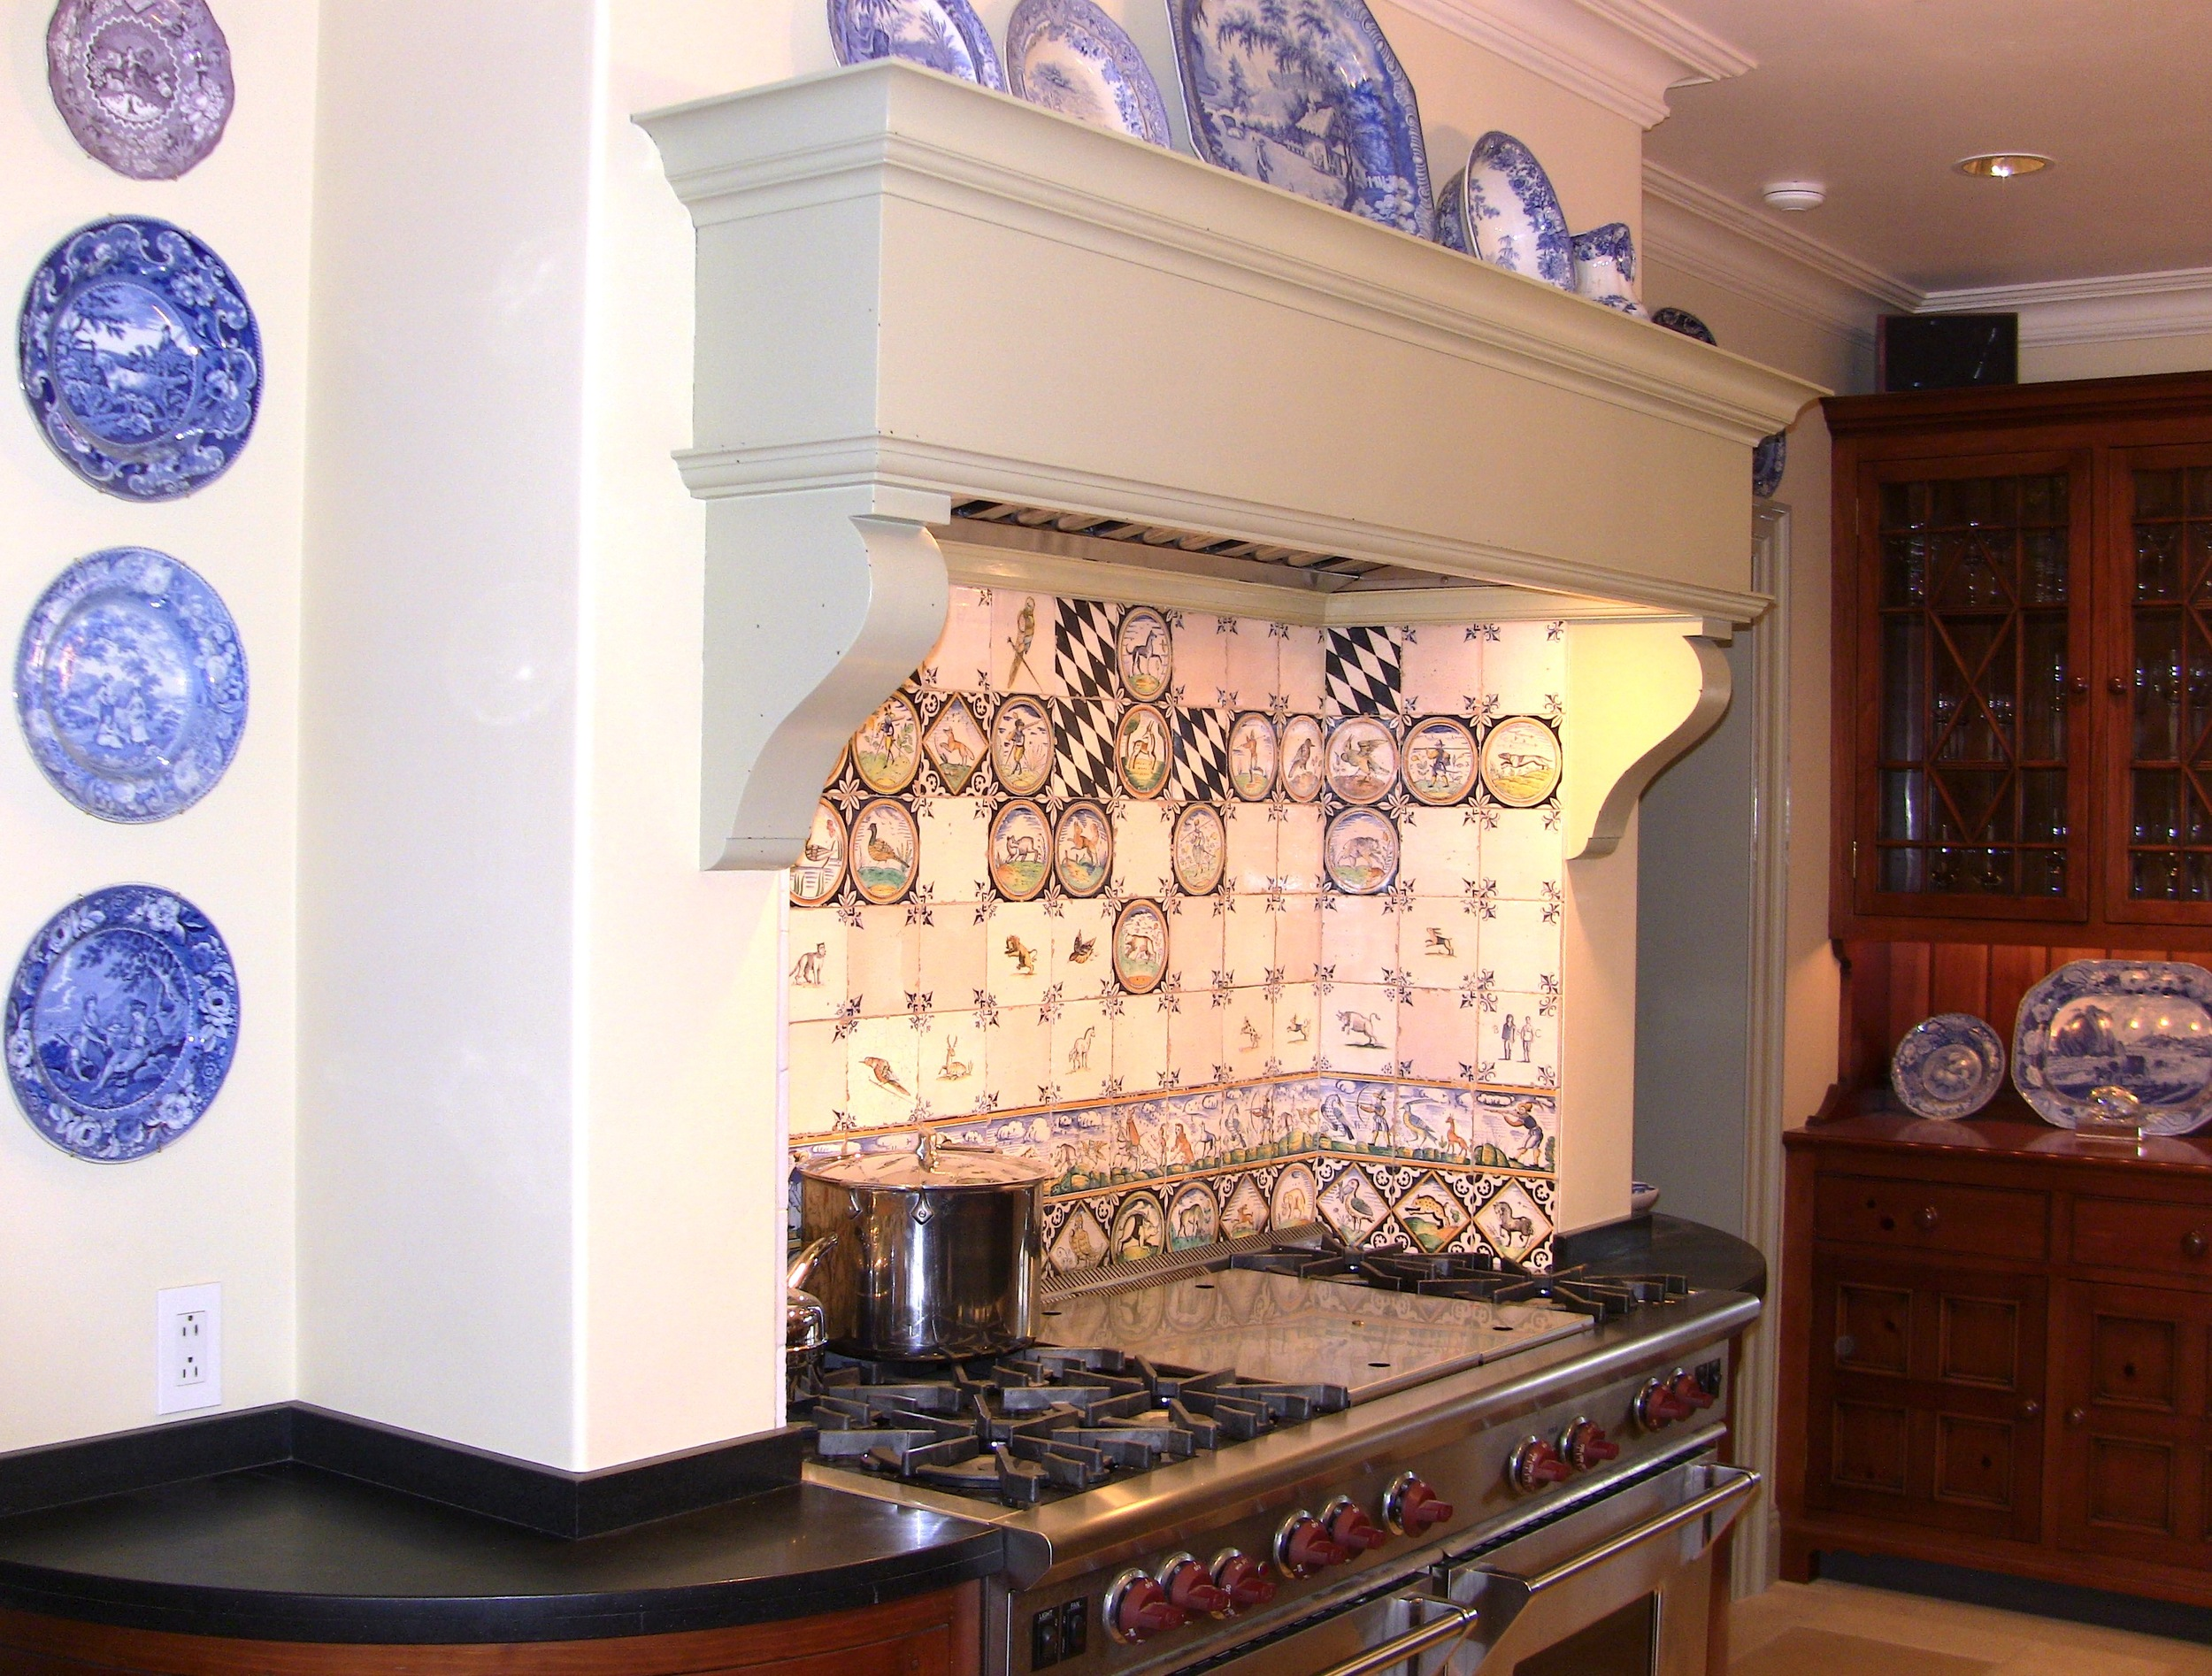 """60"""" Wolf Range with grill and griddle surrounded by delft tiles."""